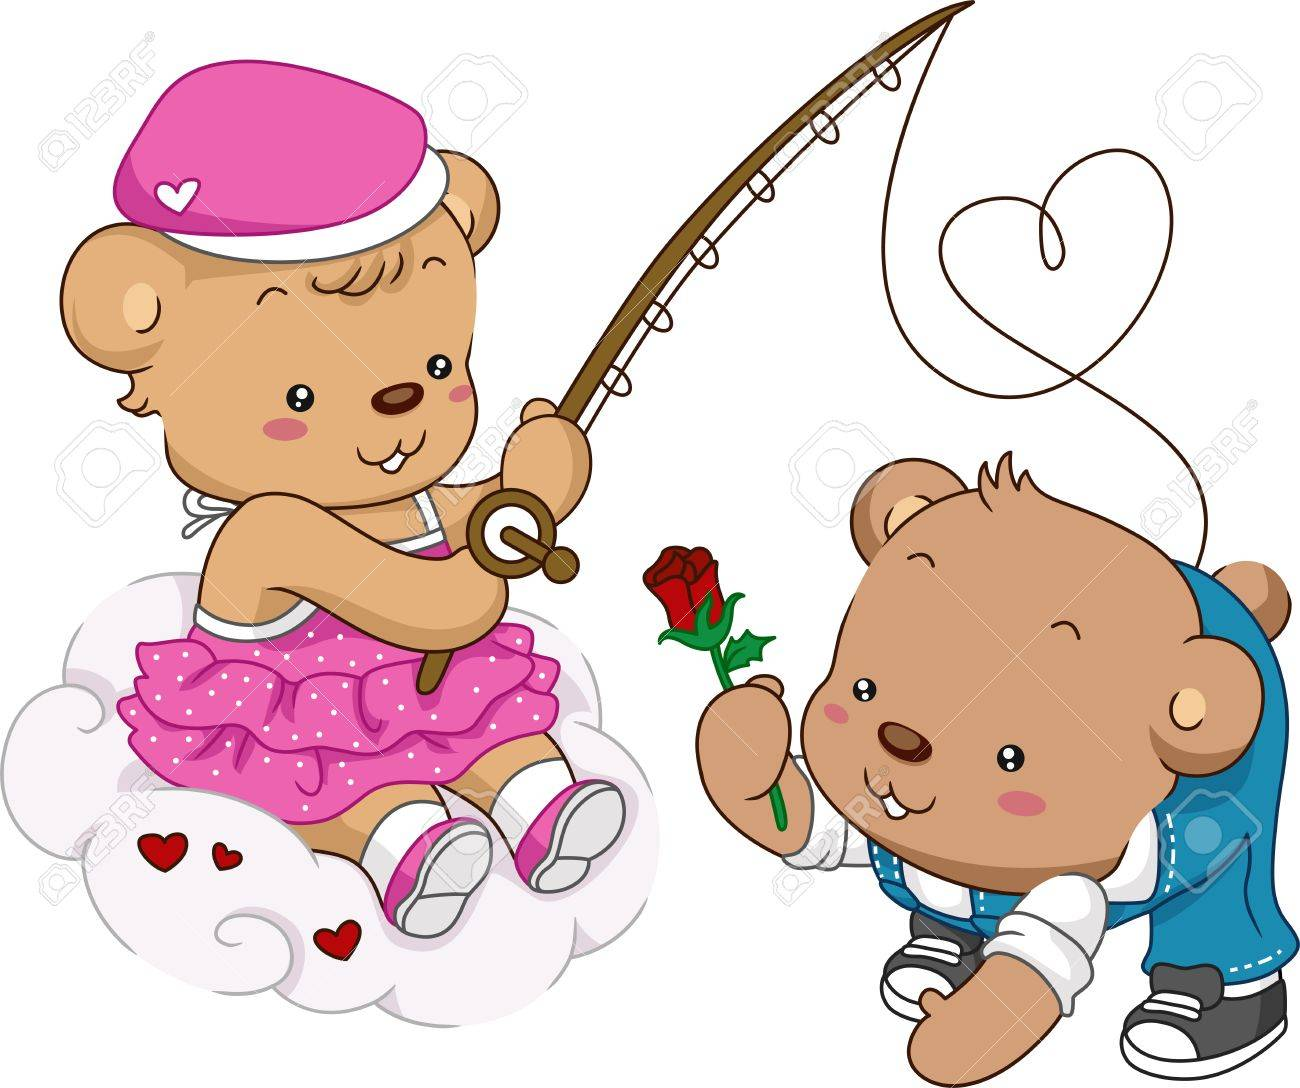 Illustration of Female Teddy Bear Out Fishing Stock Photo - 12107161